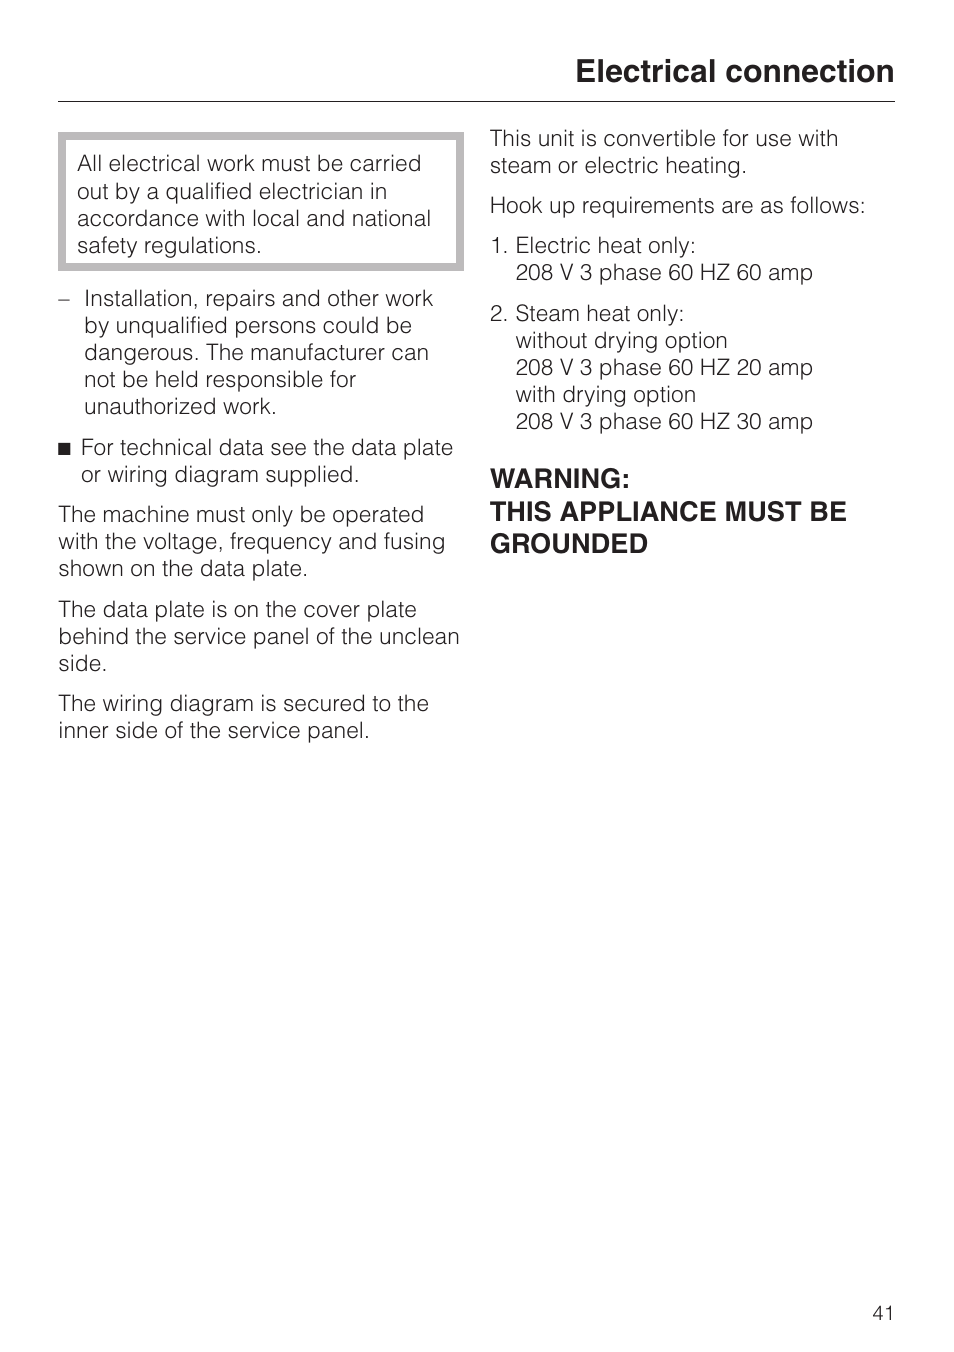 Miele Wiring Diagram Library Hoover Dryer Electrical Connection 41 Warning This Appliance Must Be Grounded